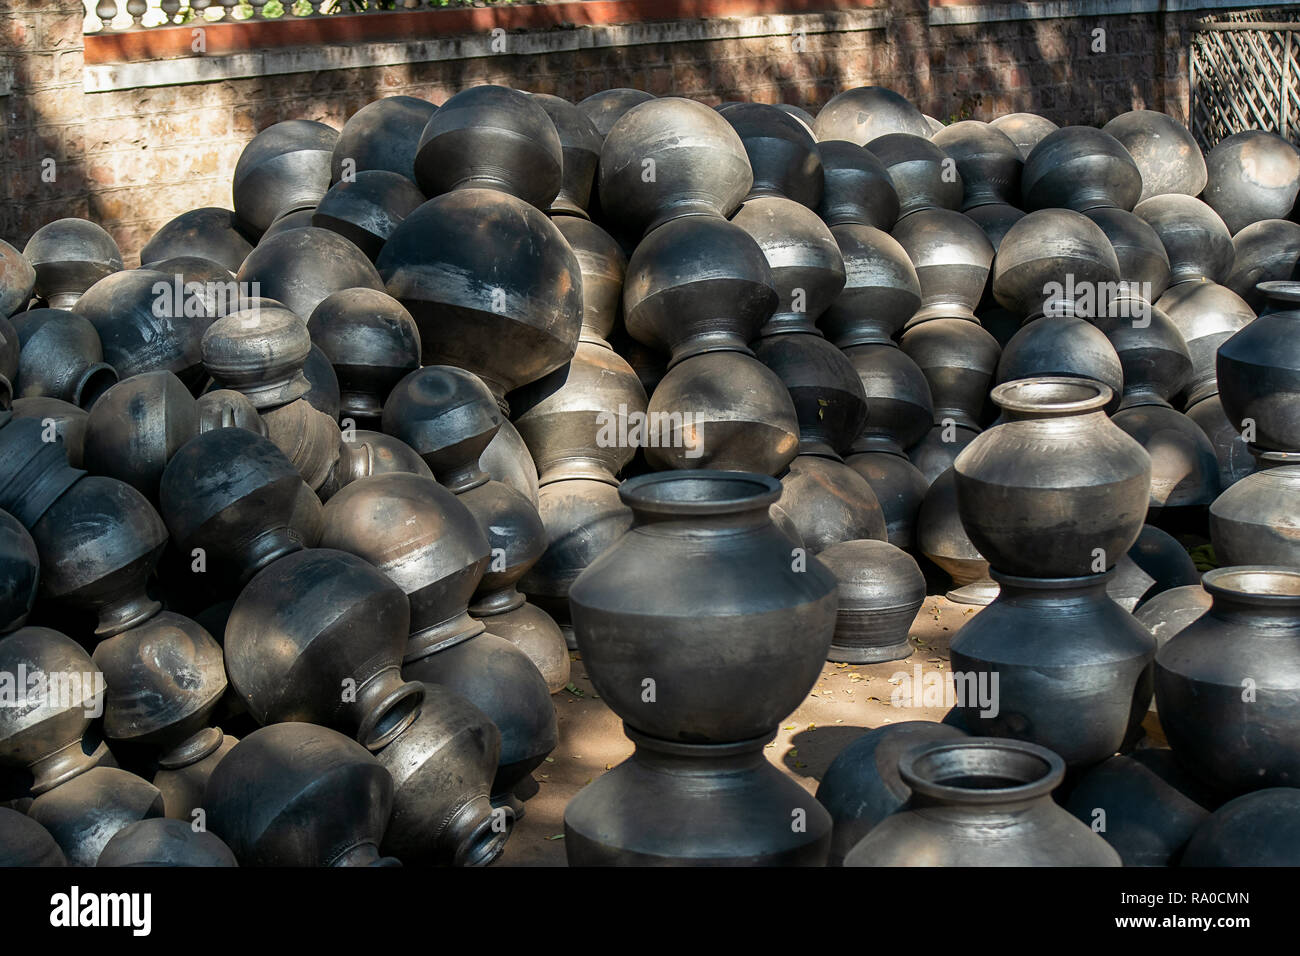 Indian Cooking Pots High Resolution Stock Photography And Images Alamy,How To Clean Fish Tank Filter Sponge